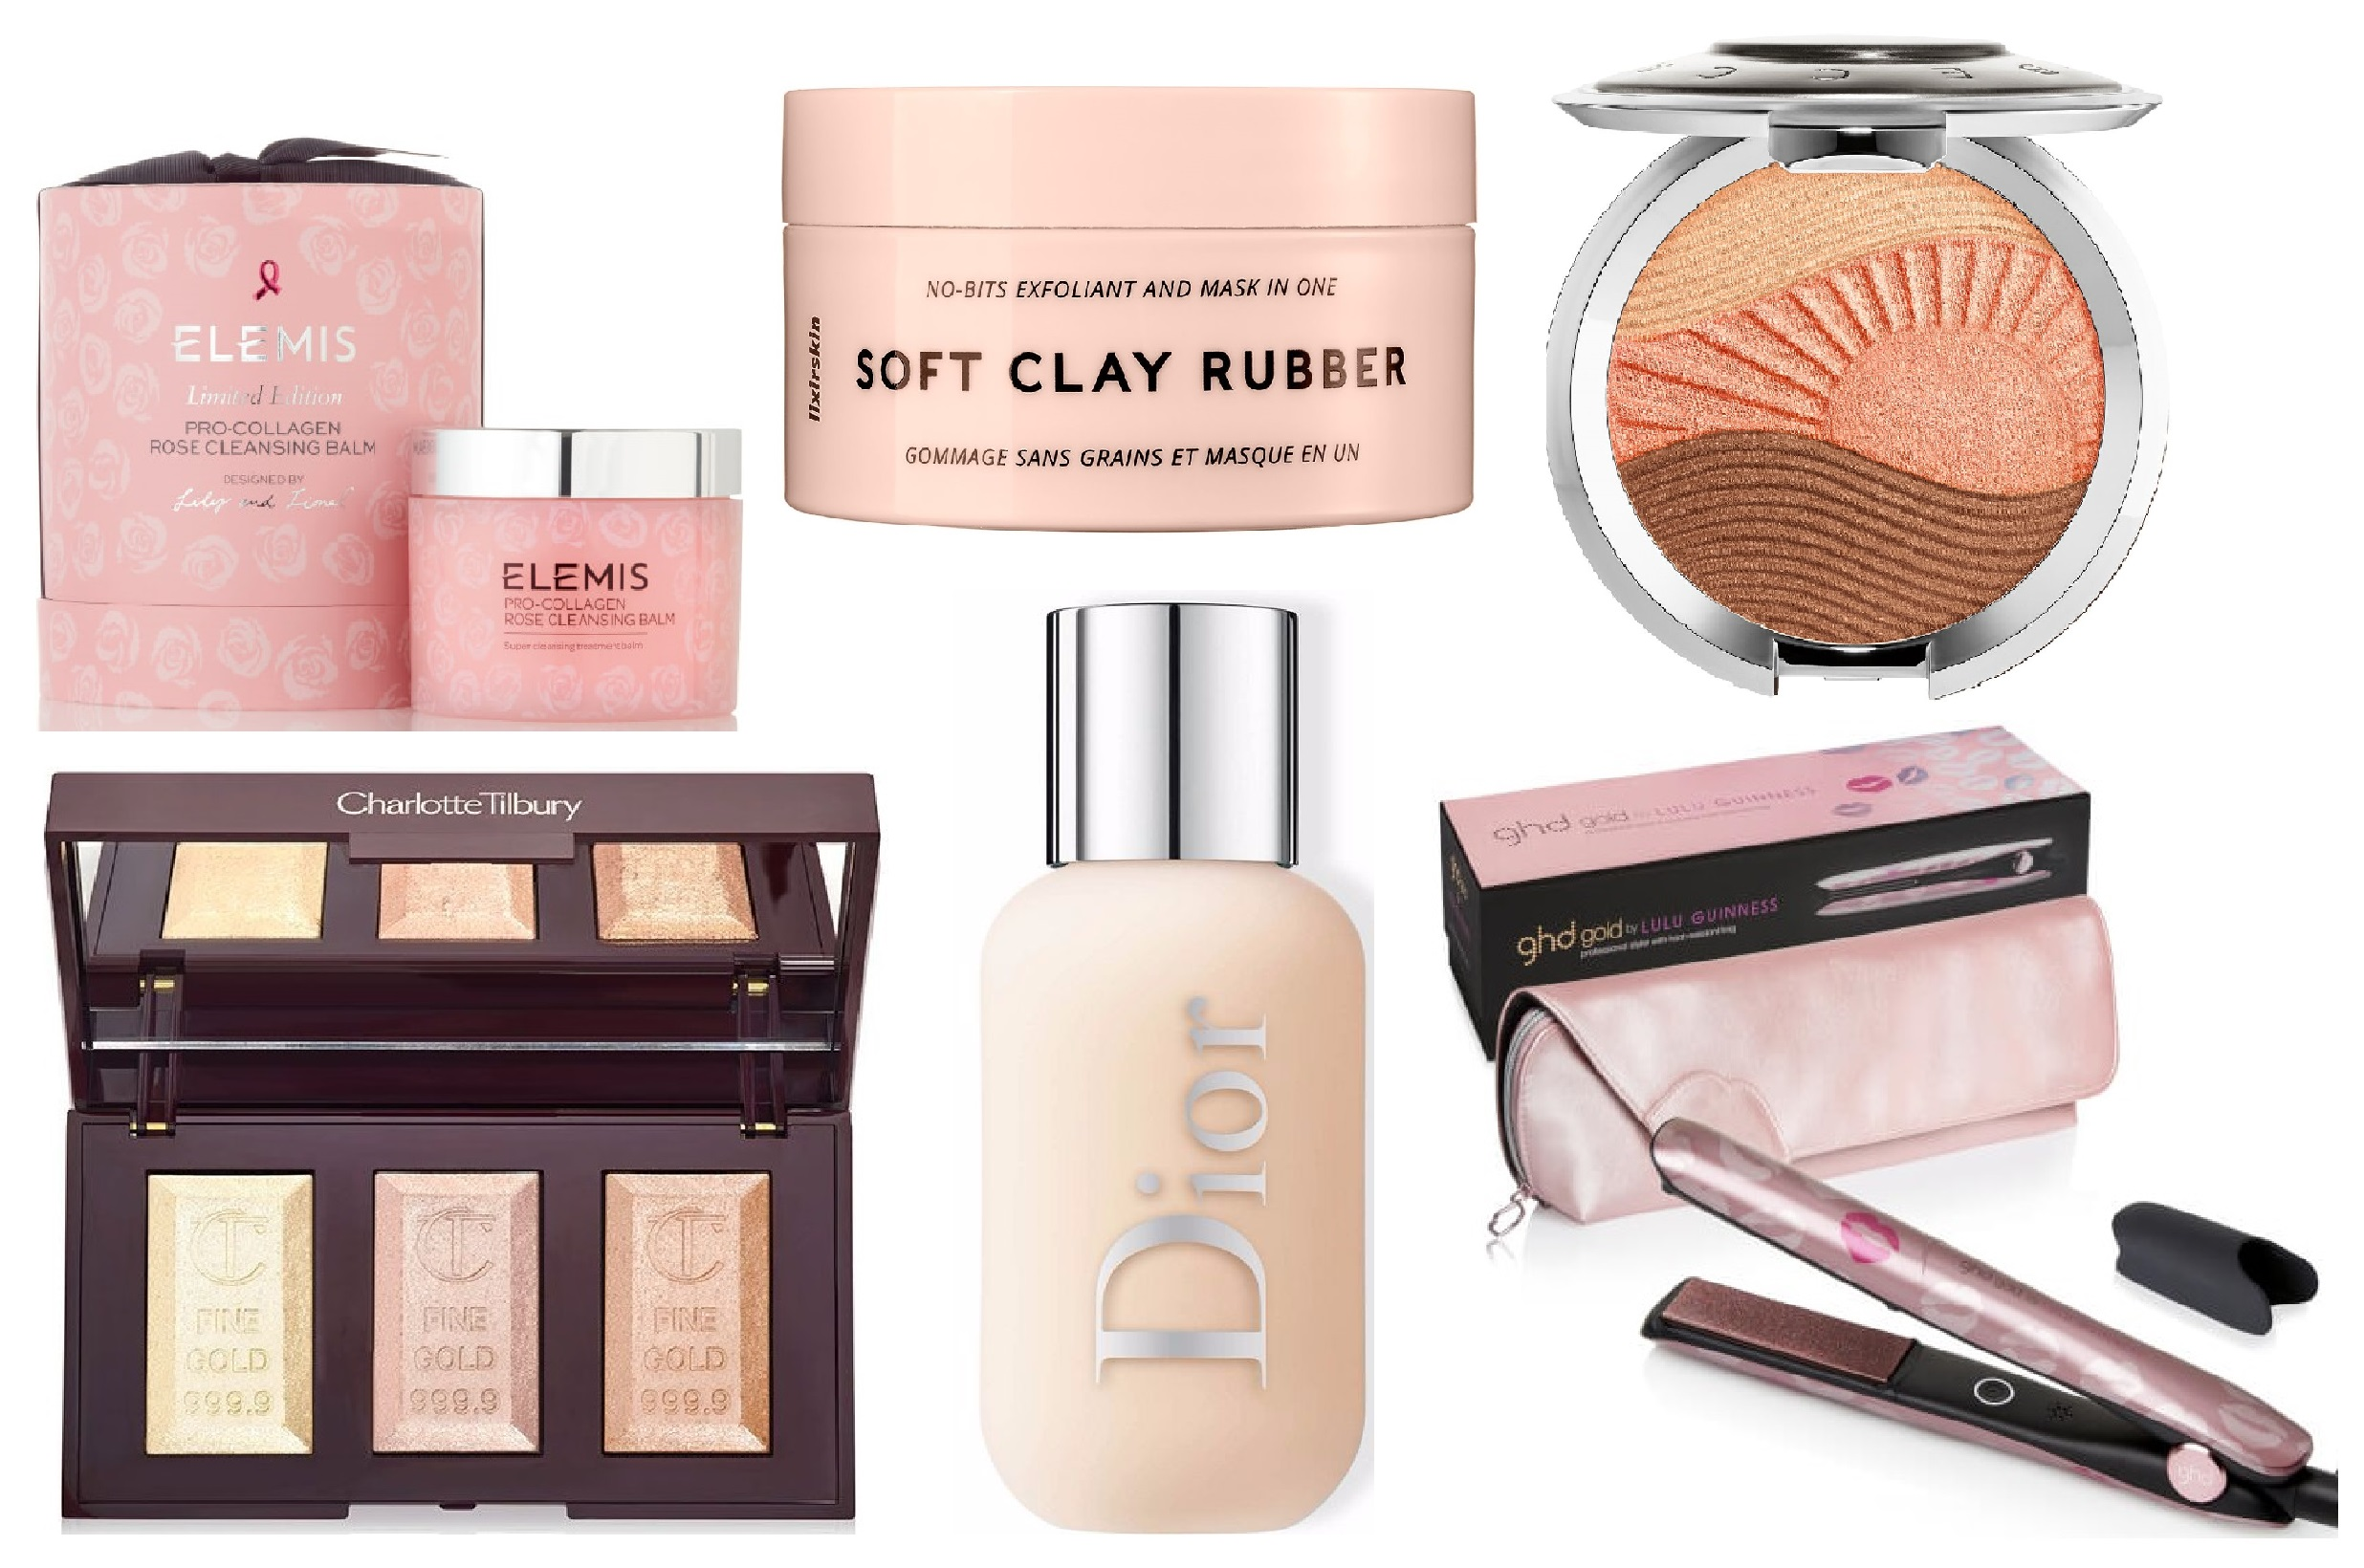 11 new need-to-know beauty products